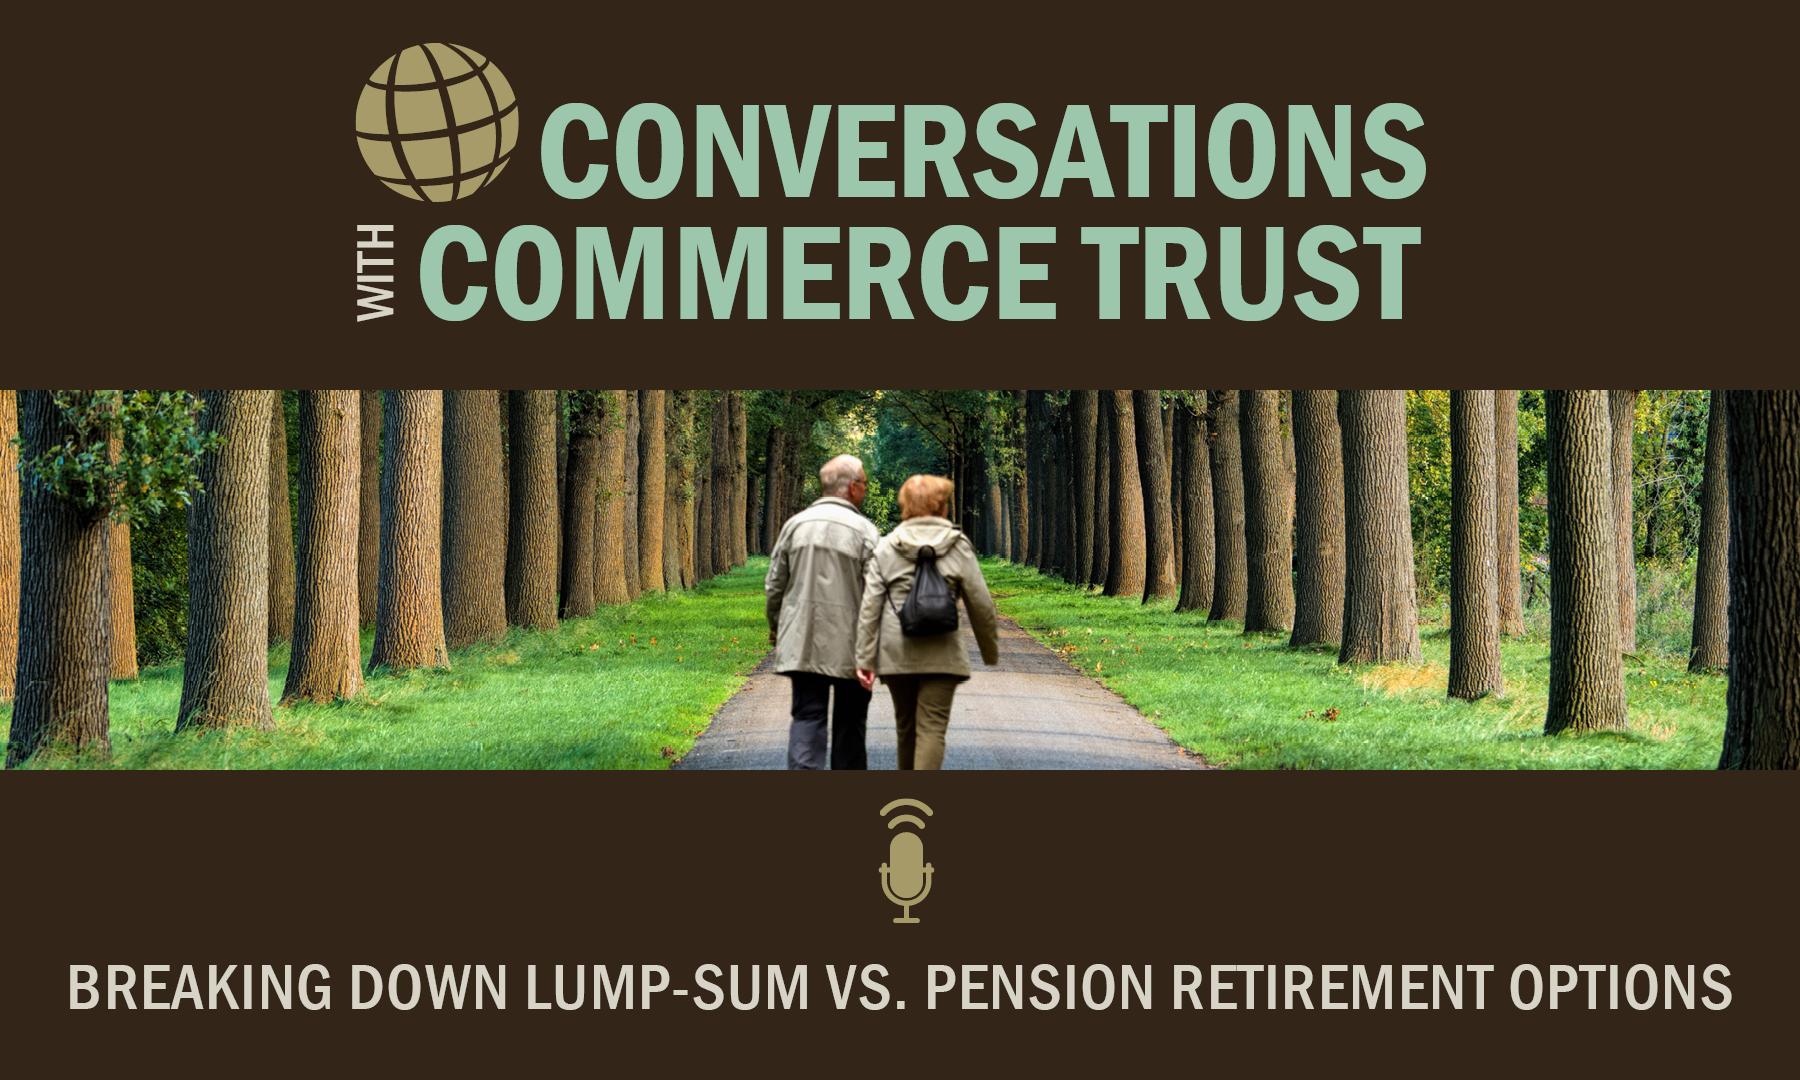 Conversations with Commerce Trust cover of a couple hiking in a grove of trees